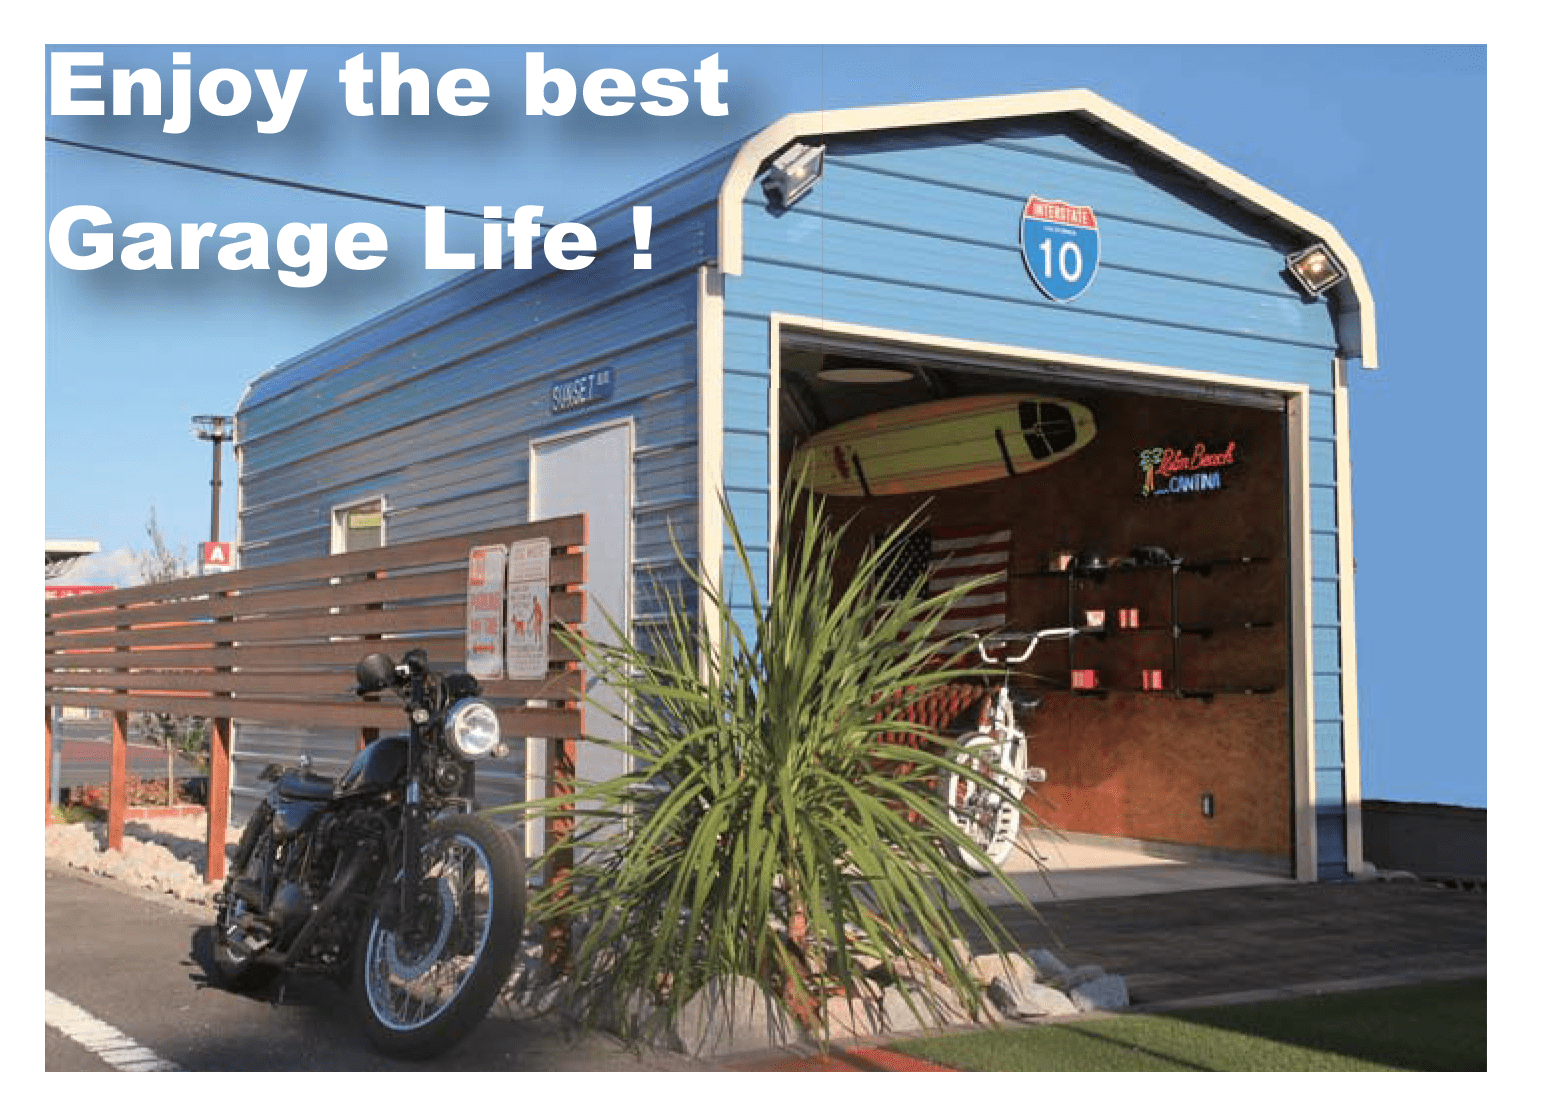 enjoy the best garage life